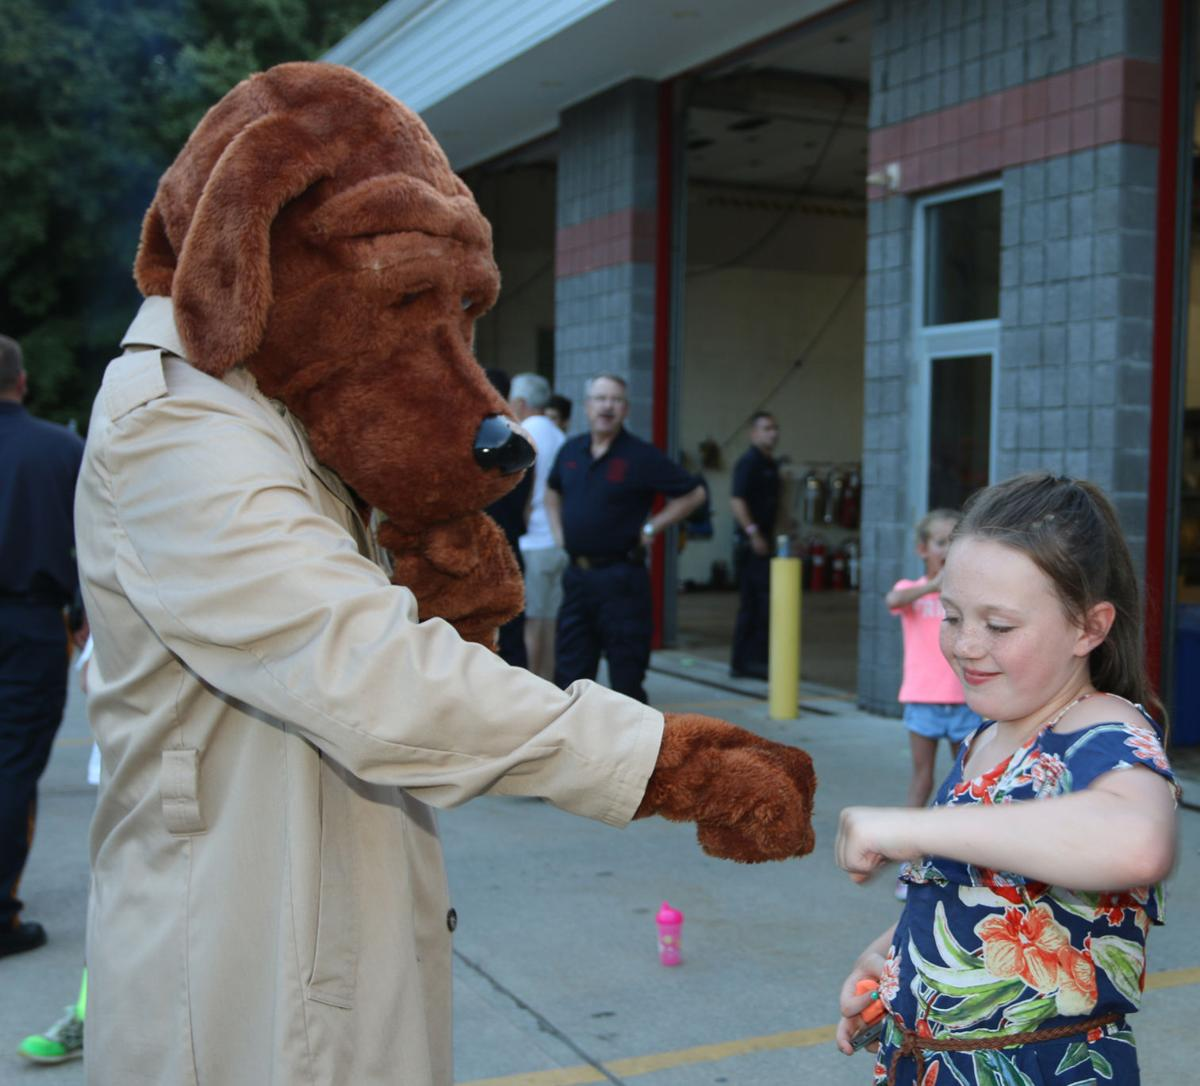 A Meeting with McGruff